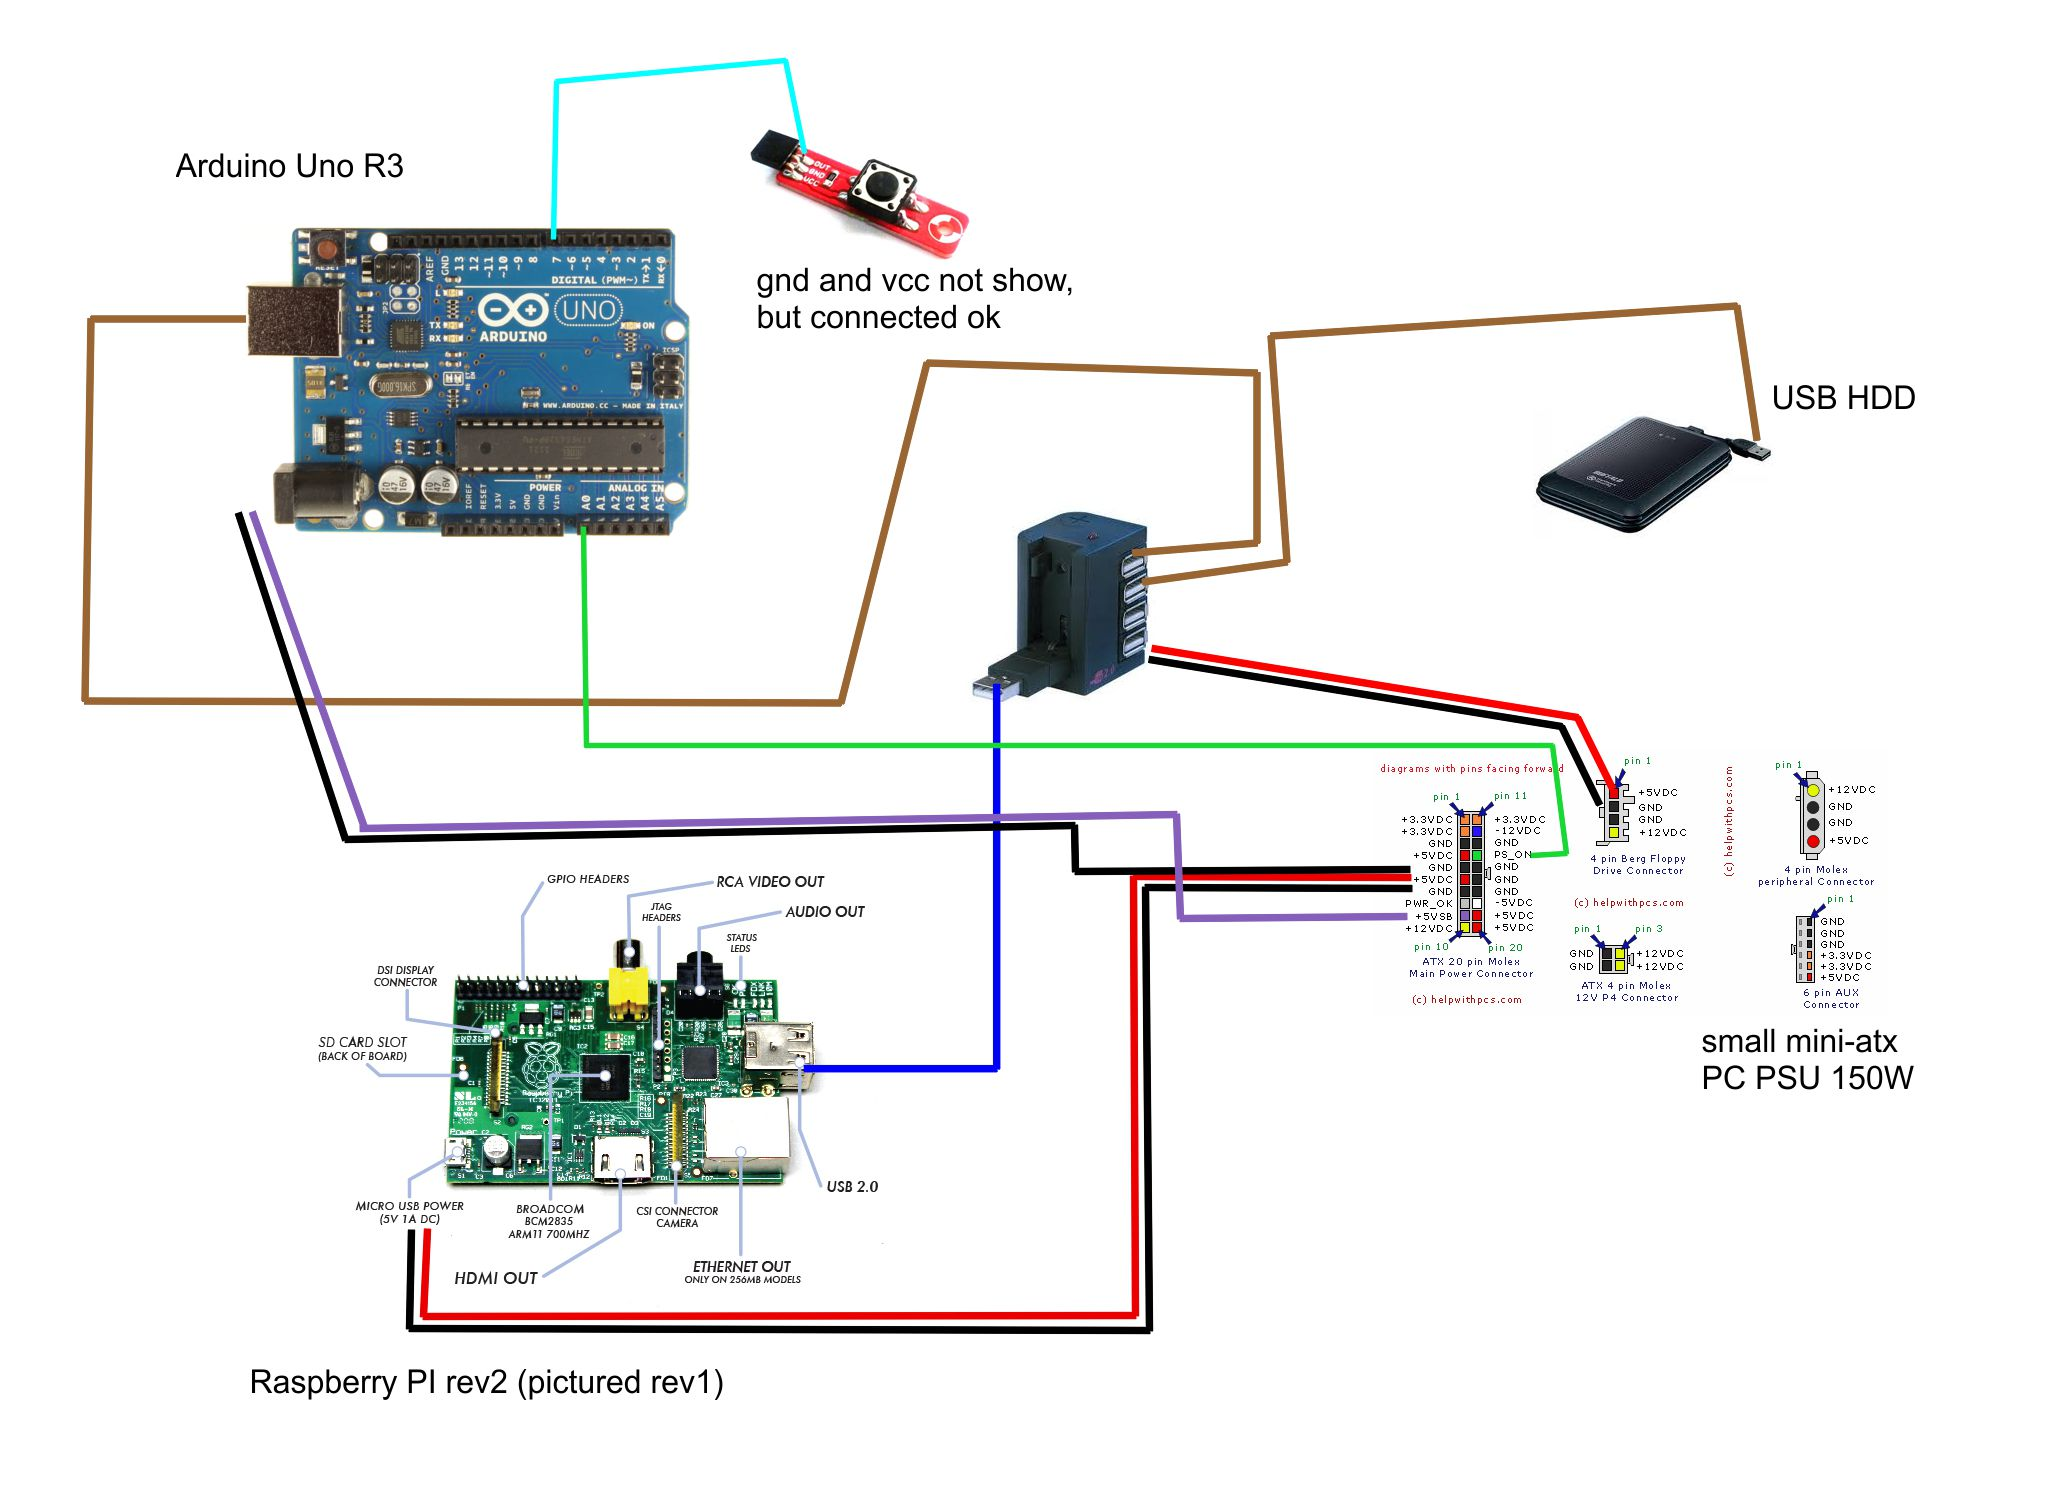 Power Supply Drawing At Free For Personal Use Atx Schematic 2048x1500